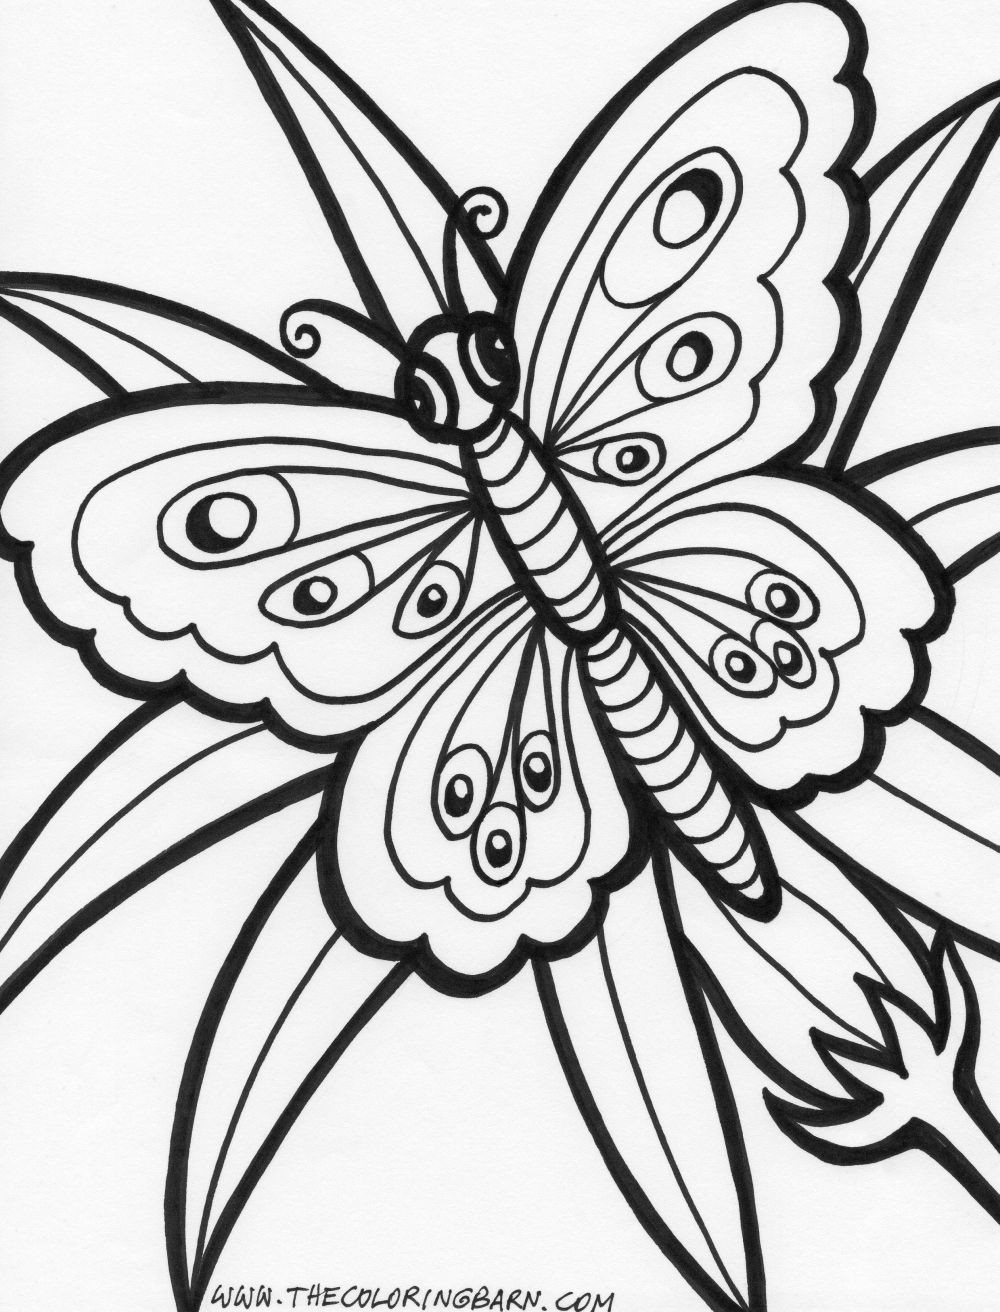 Best ideas about Flower Coloring Sheets For Girls . Save or Pin Flower Coloring Pages For Girls 10 And Up Coloring Home Now.